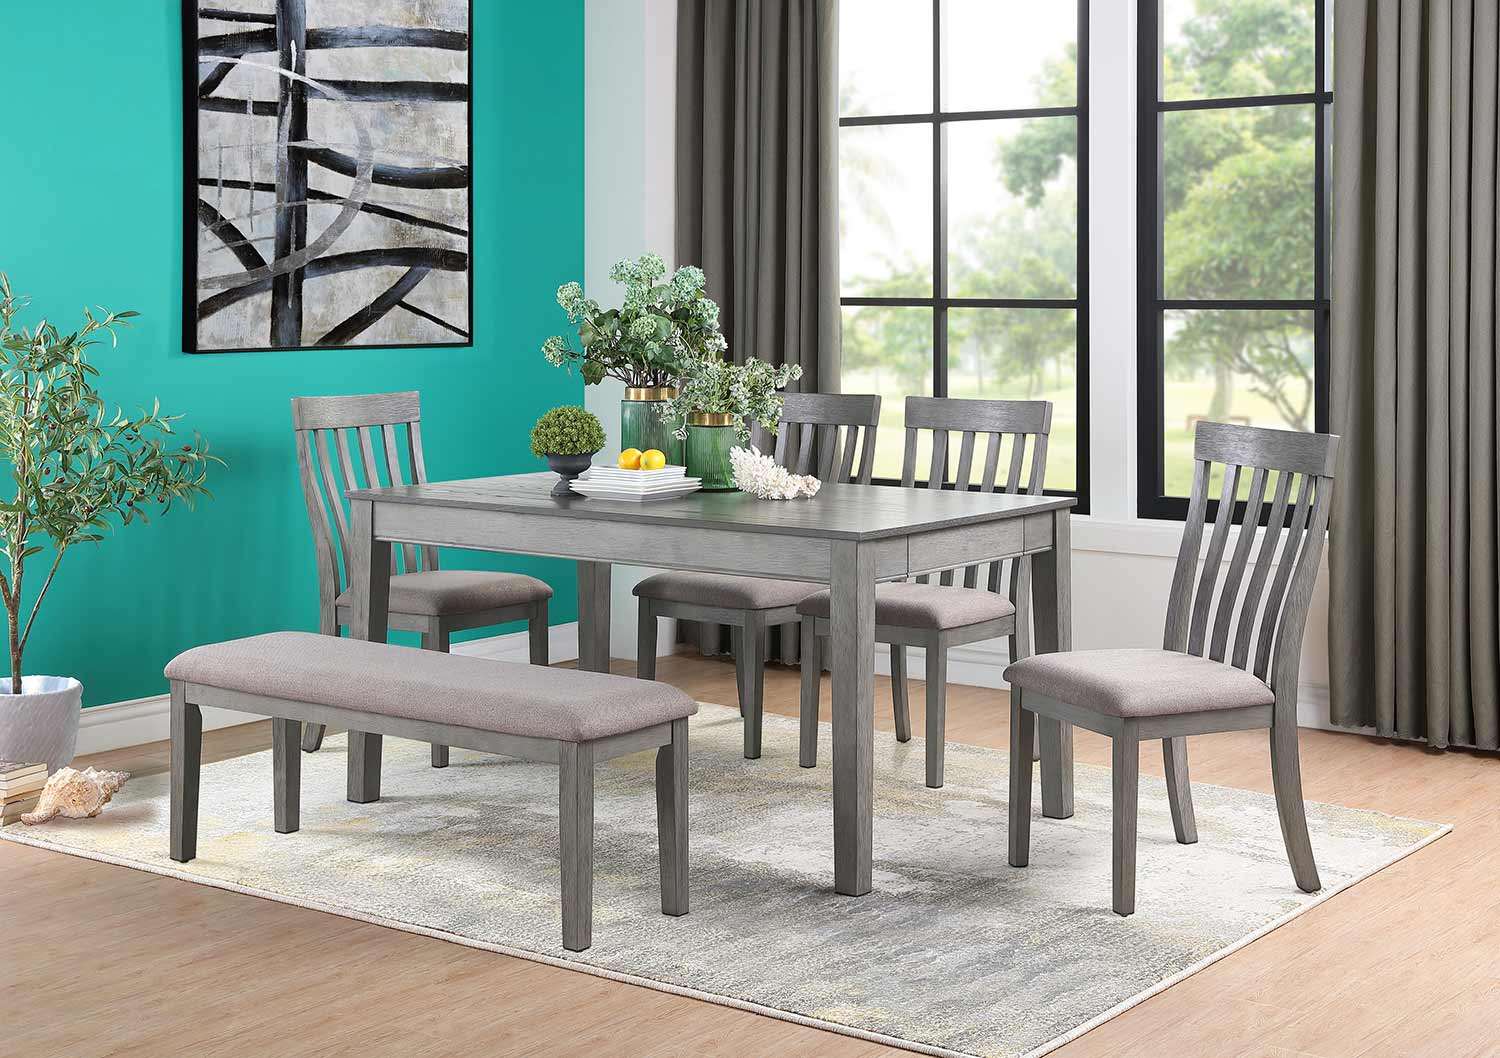 Homelegance Armhurst Dining Set - Gray